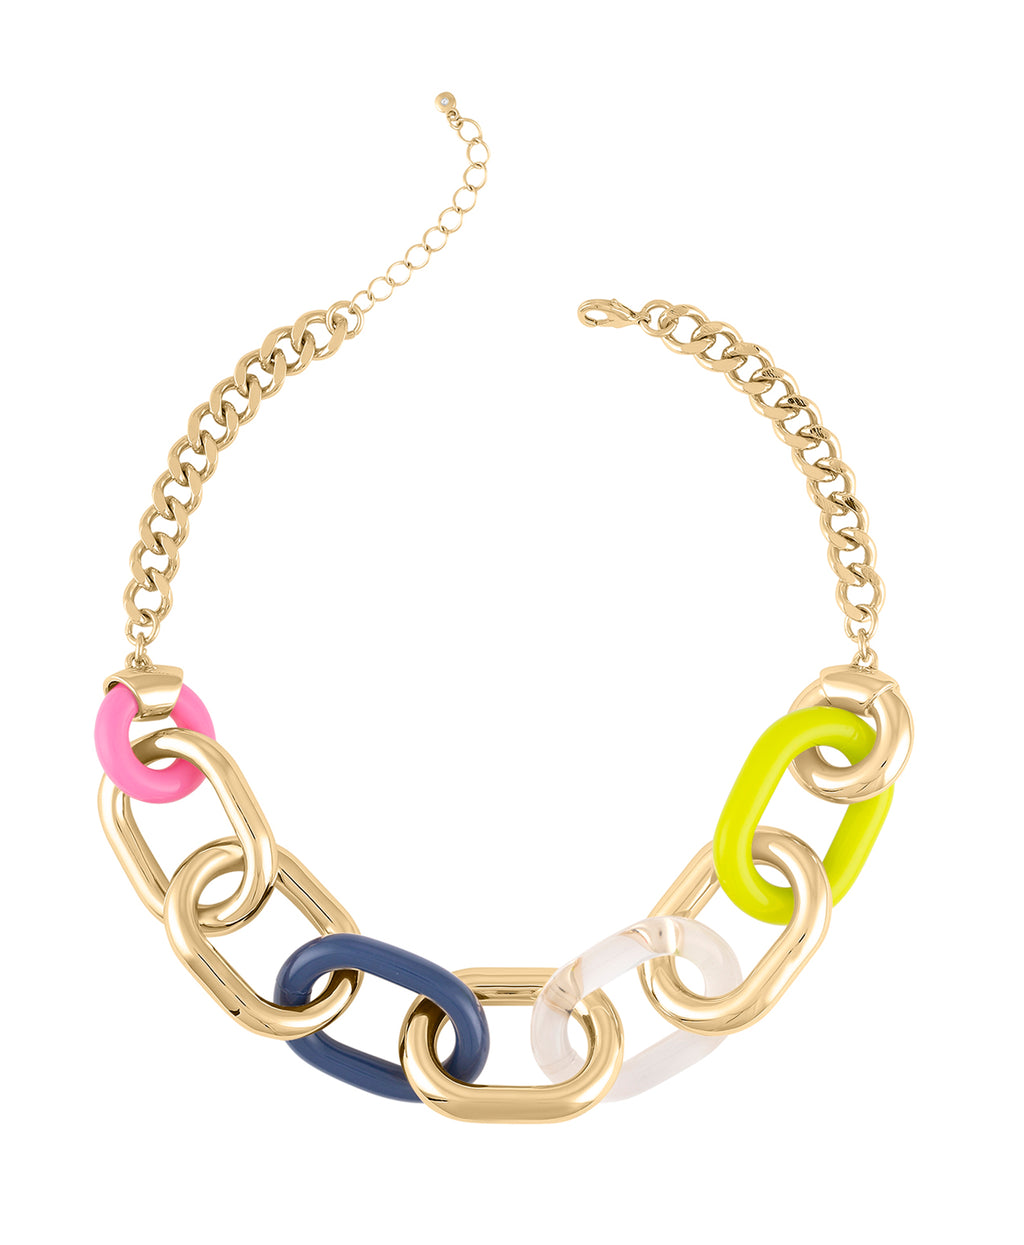 LITE BRIGHT LINK NECKLACE | LITE BRIGHT LINK NECKLACE